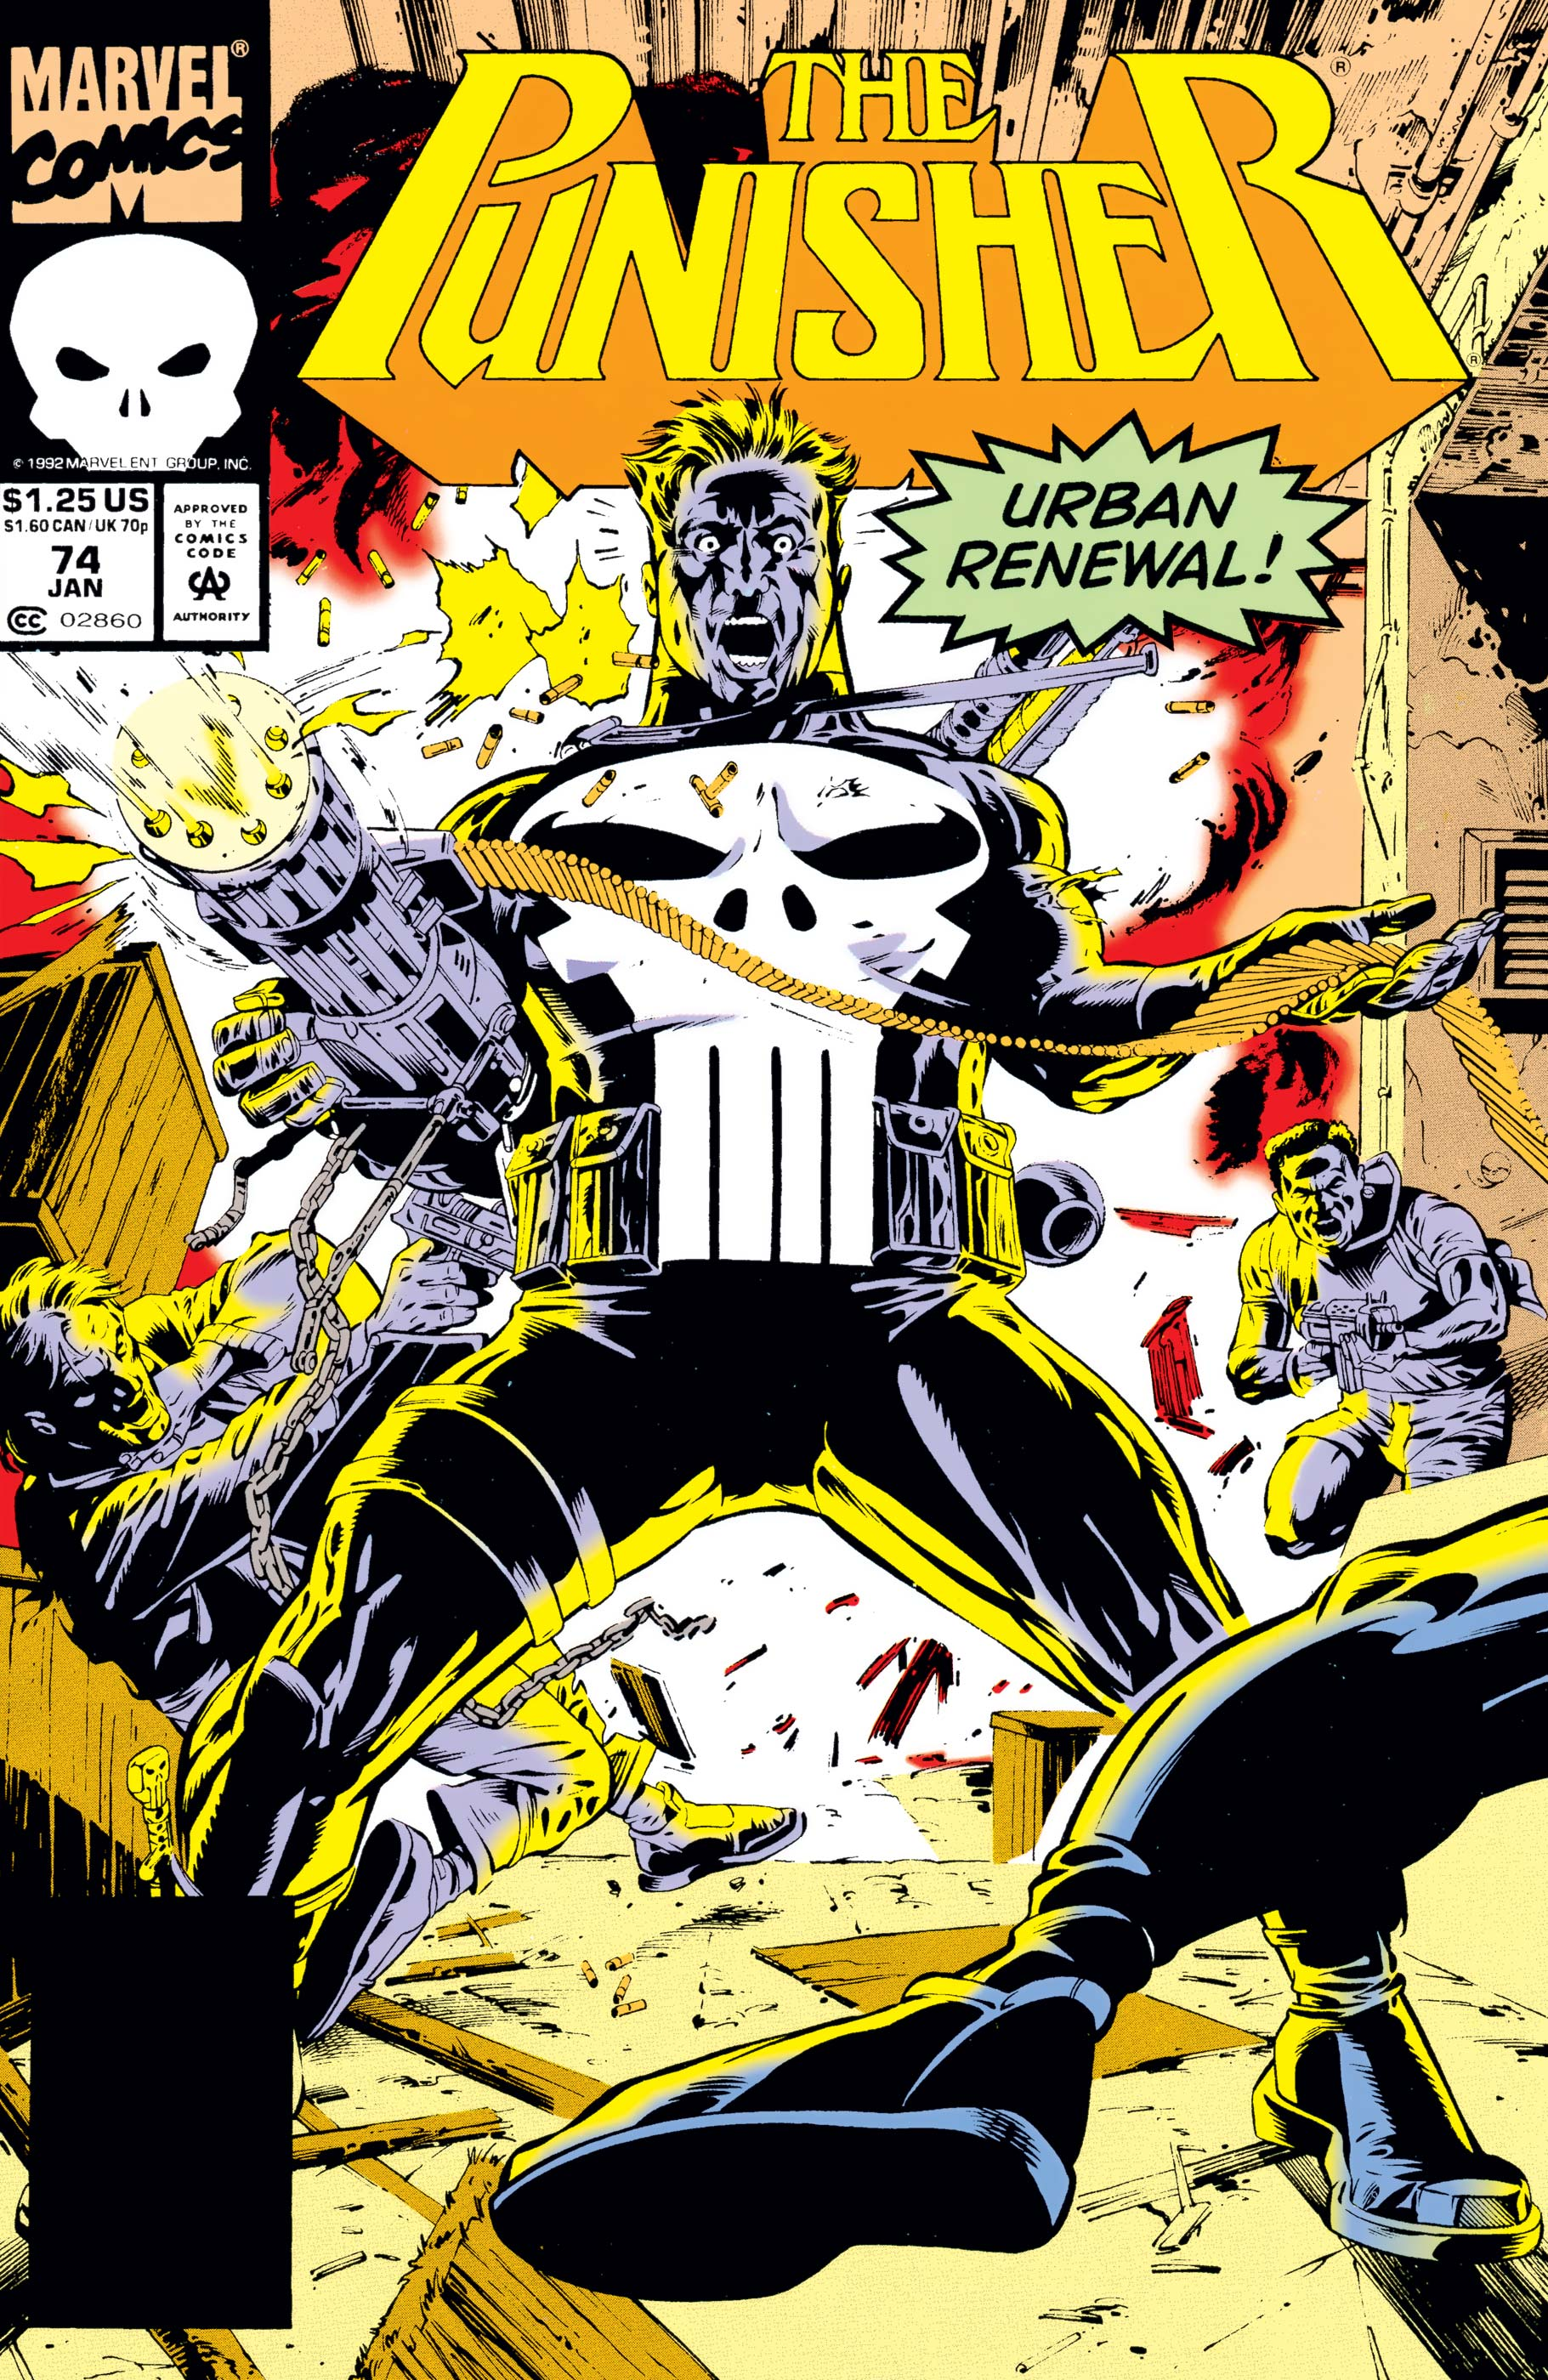 The Punisher (1987) #74